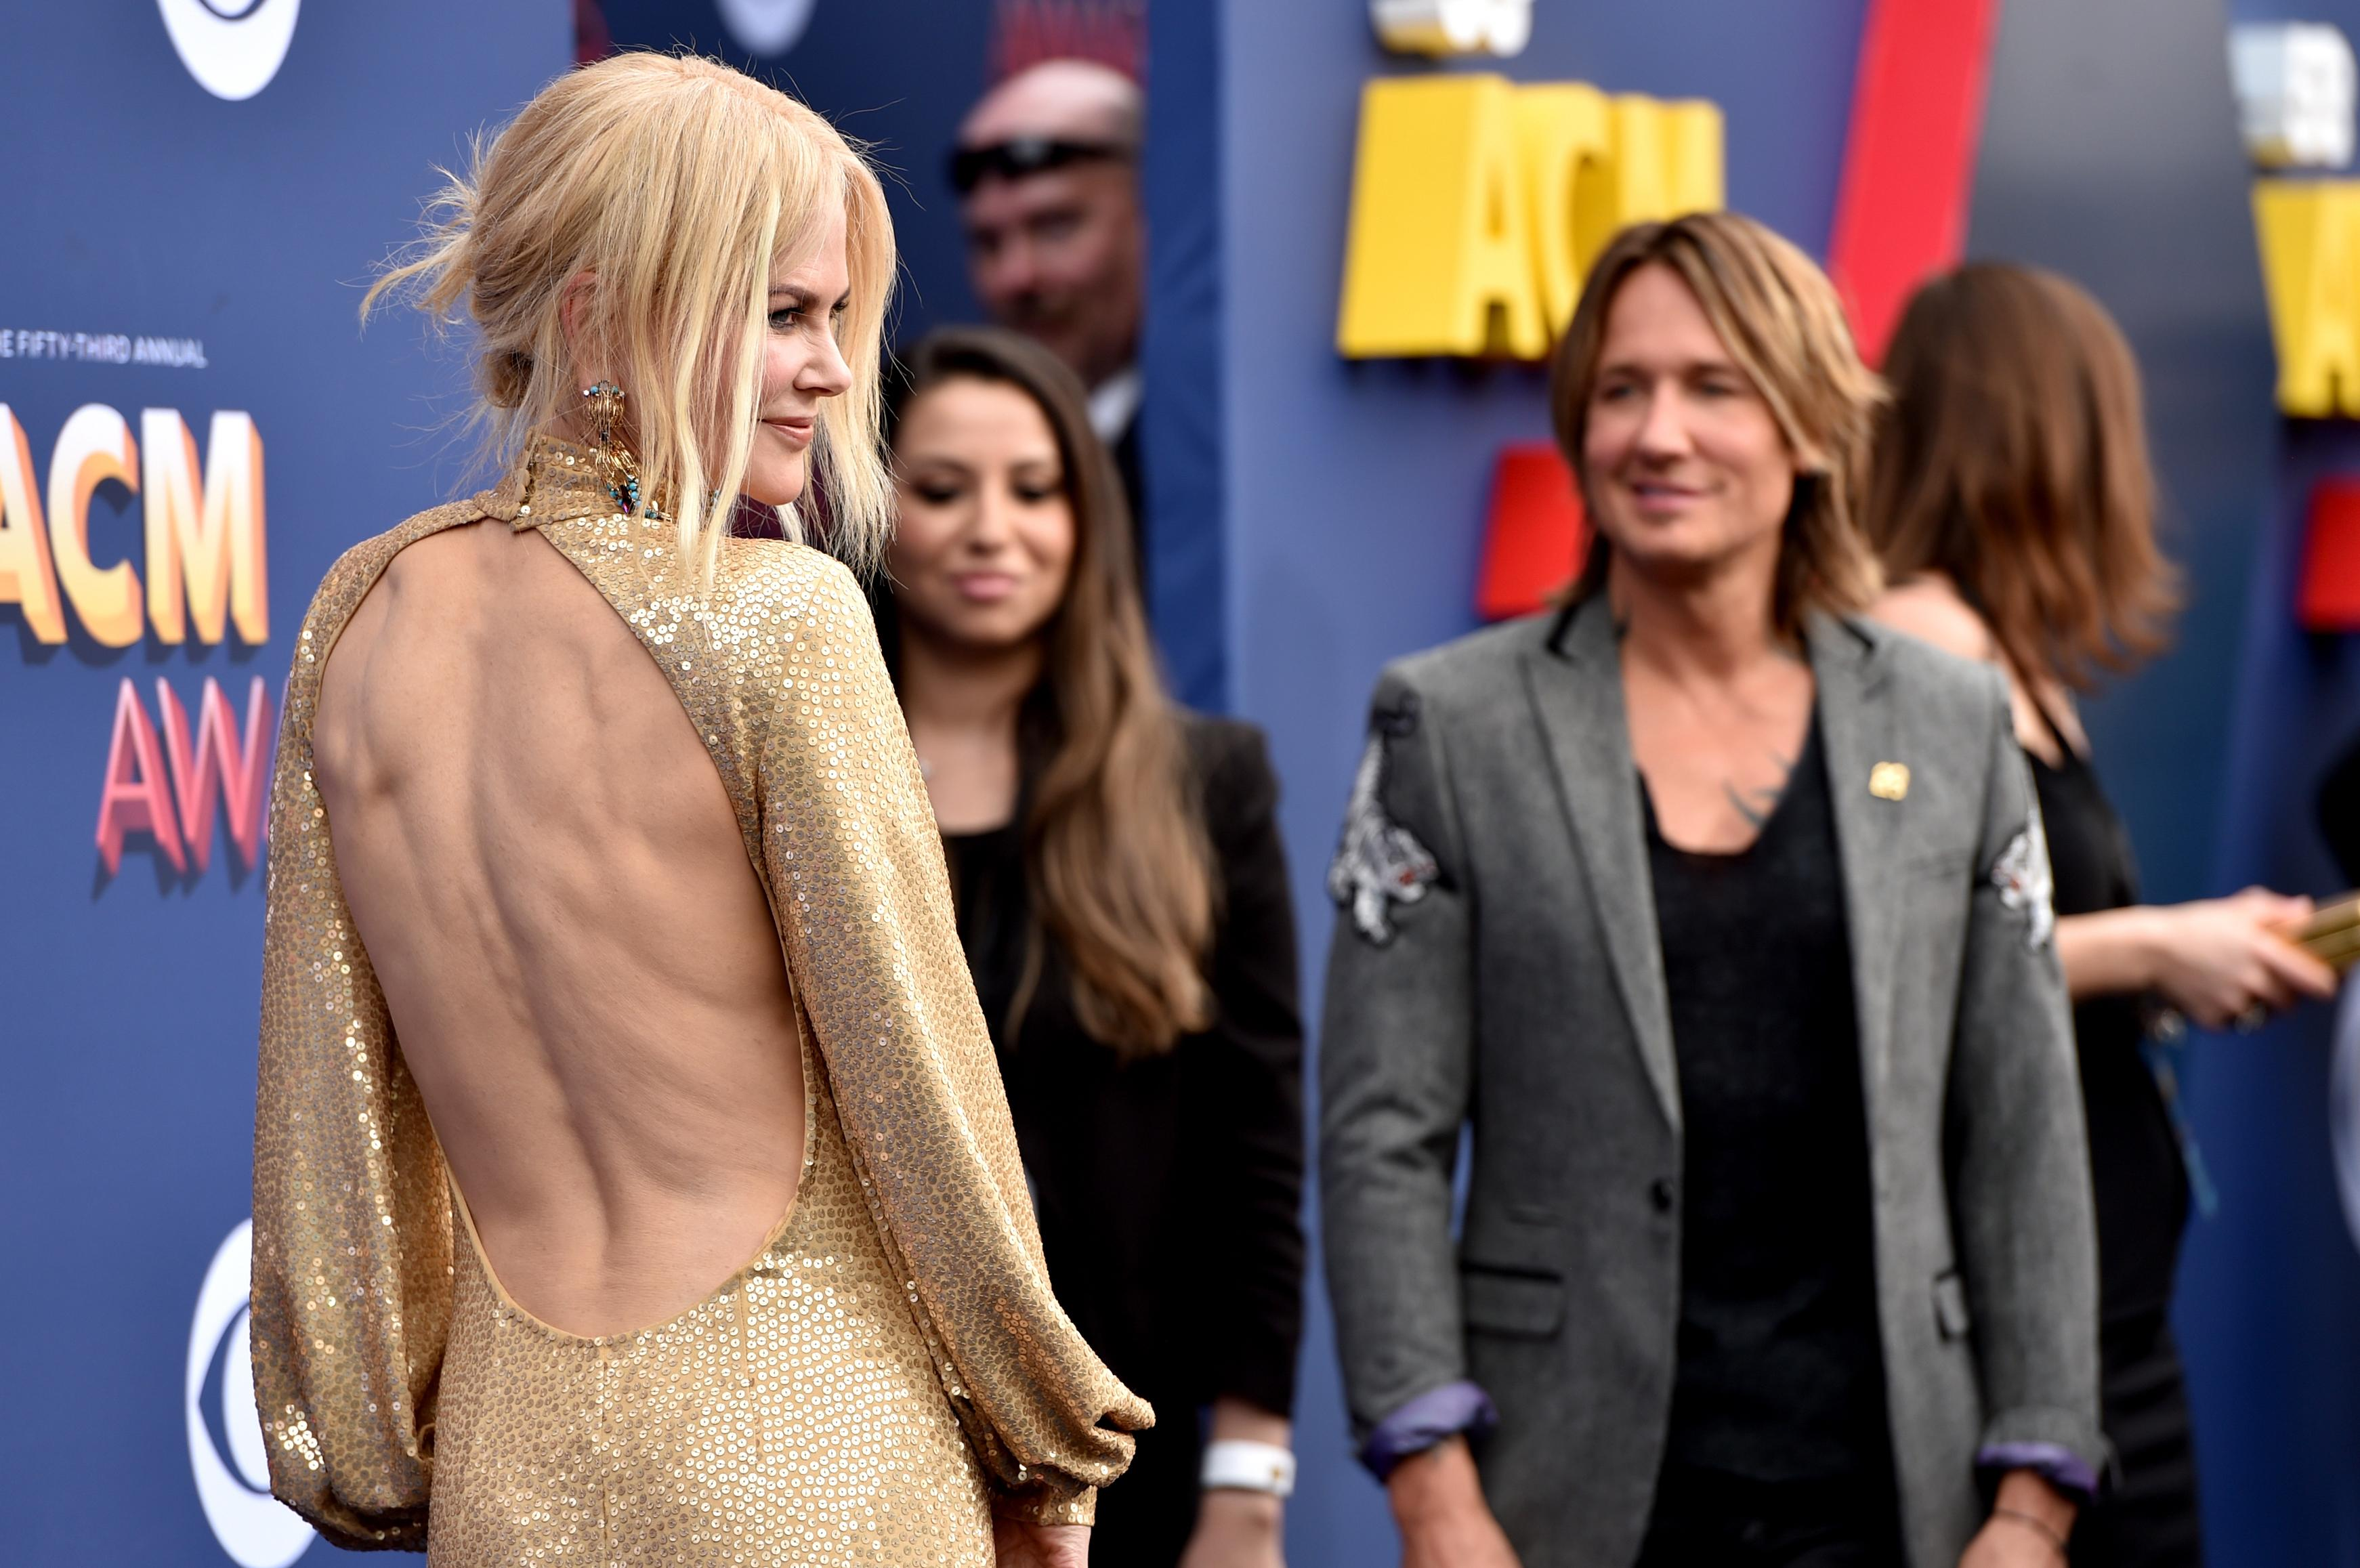 Nicole Kidman supports Keith Urban at ACM Awards